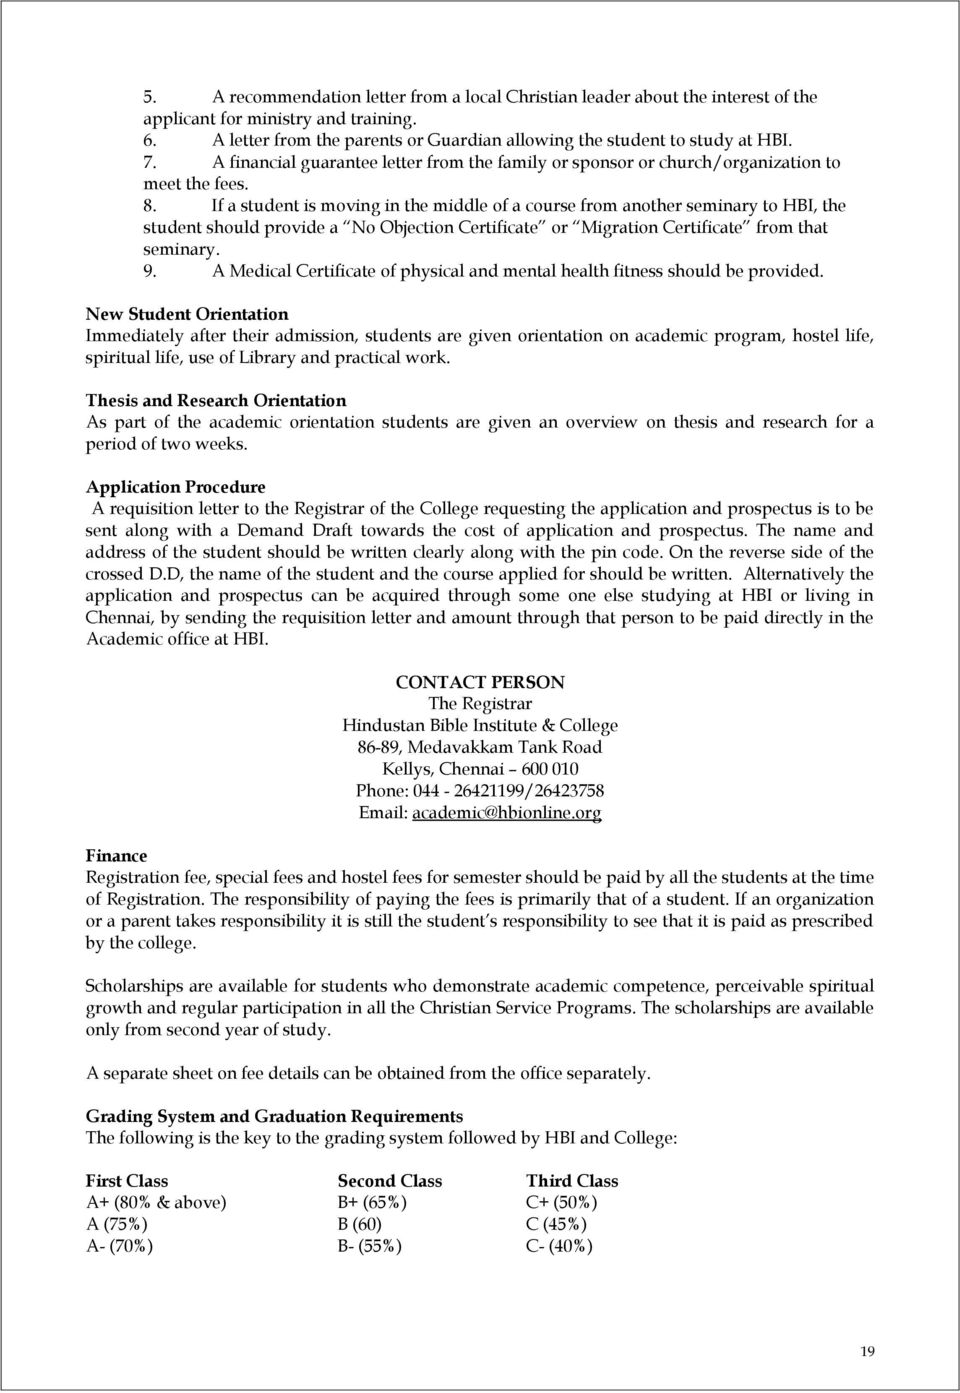 worksheet Reading Comprehension Worksheets Online workbooks reading comprehension worksheets online free printable student services thesis payment